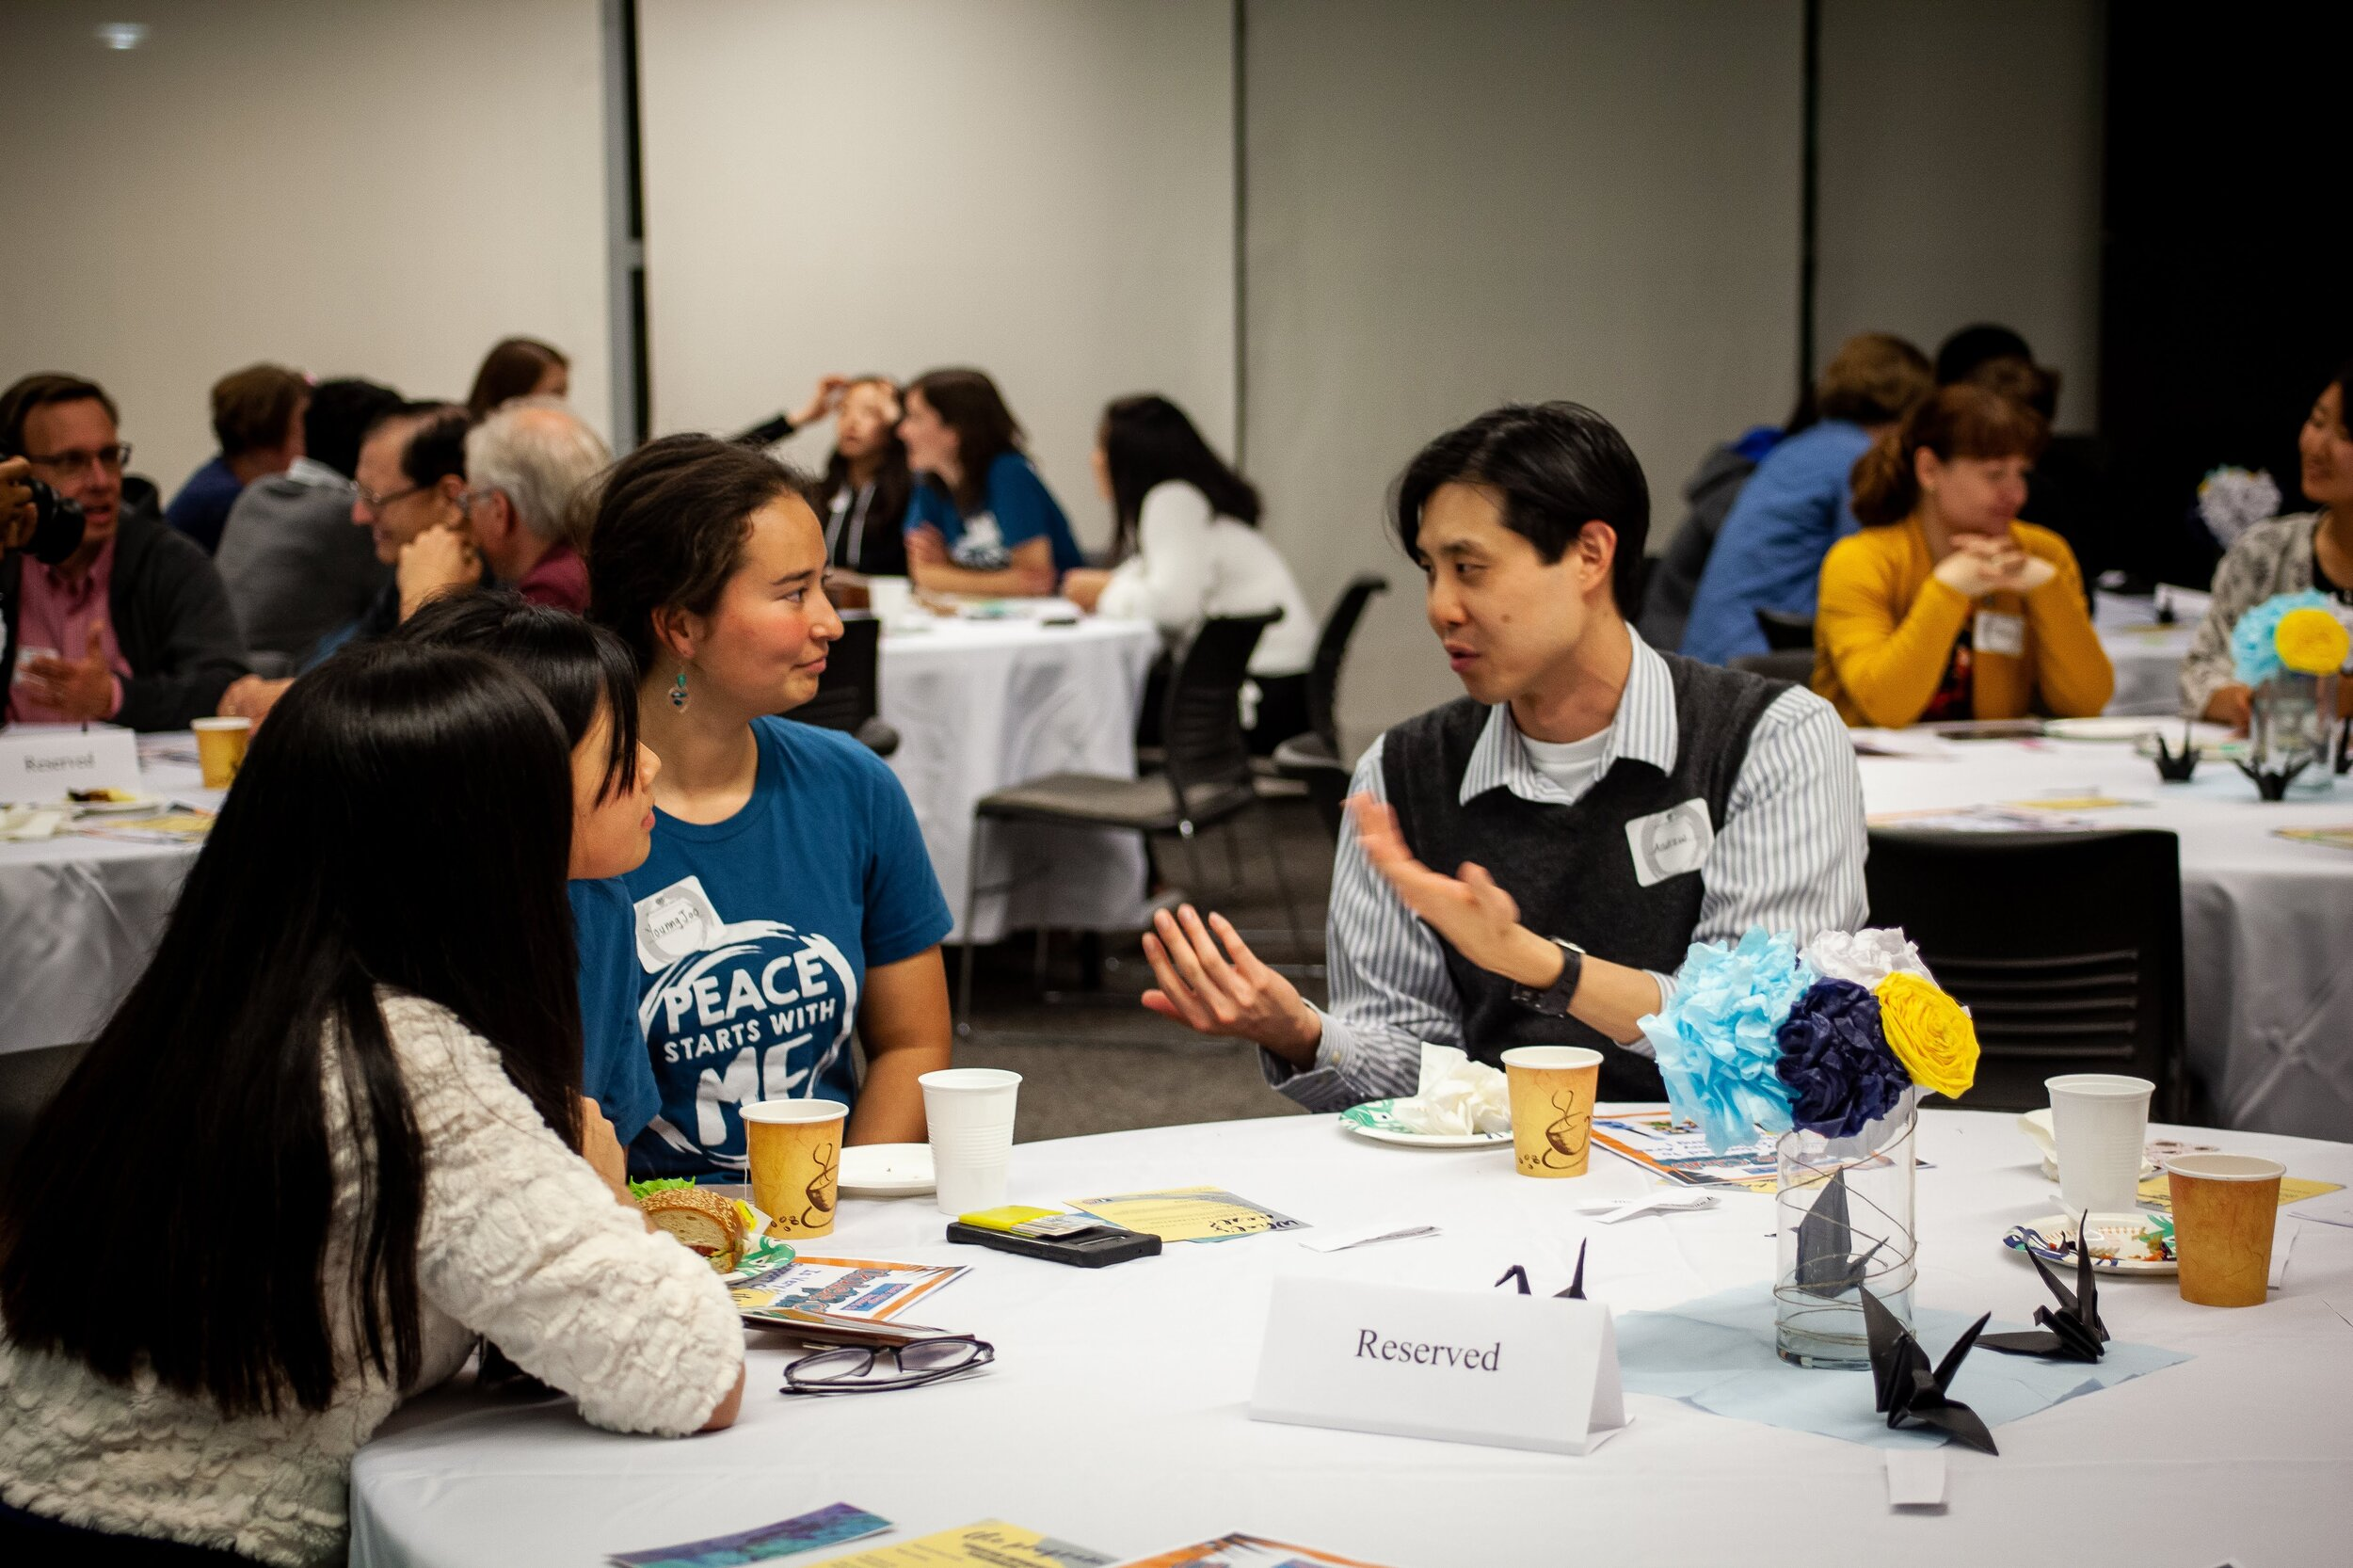 Carp Bay Area Campus Event Education Is For Creating Peacemakers Collegiate Association For The Research Of Principles